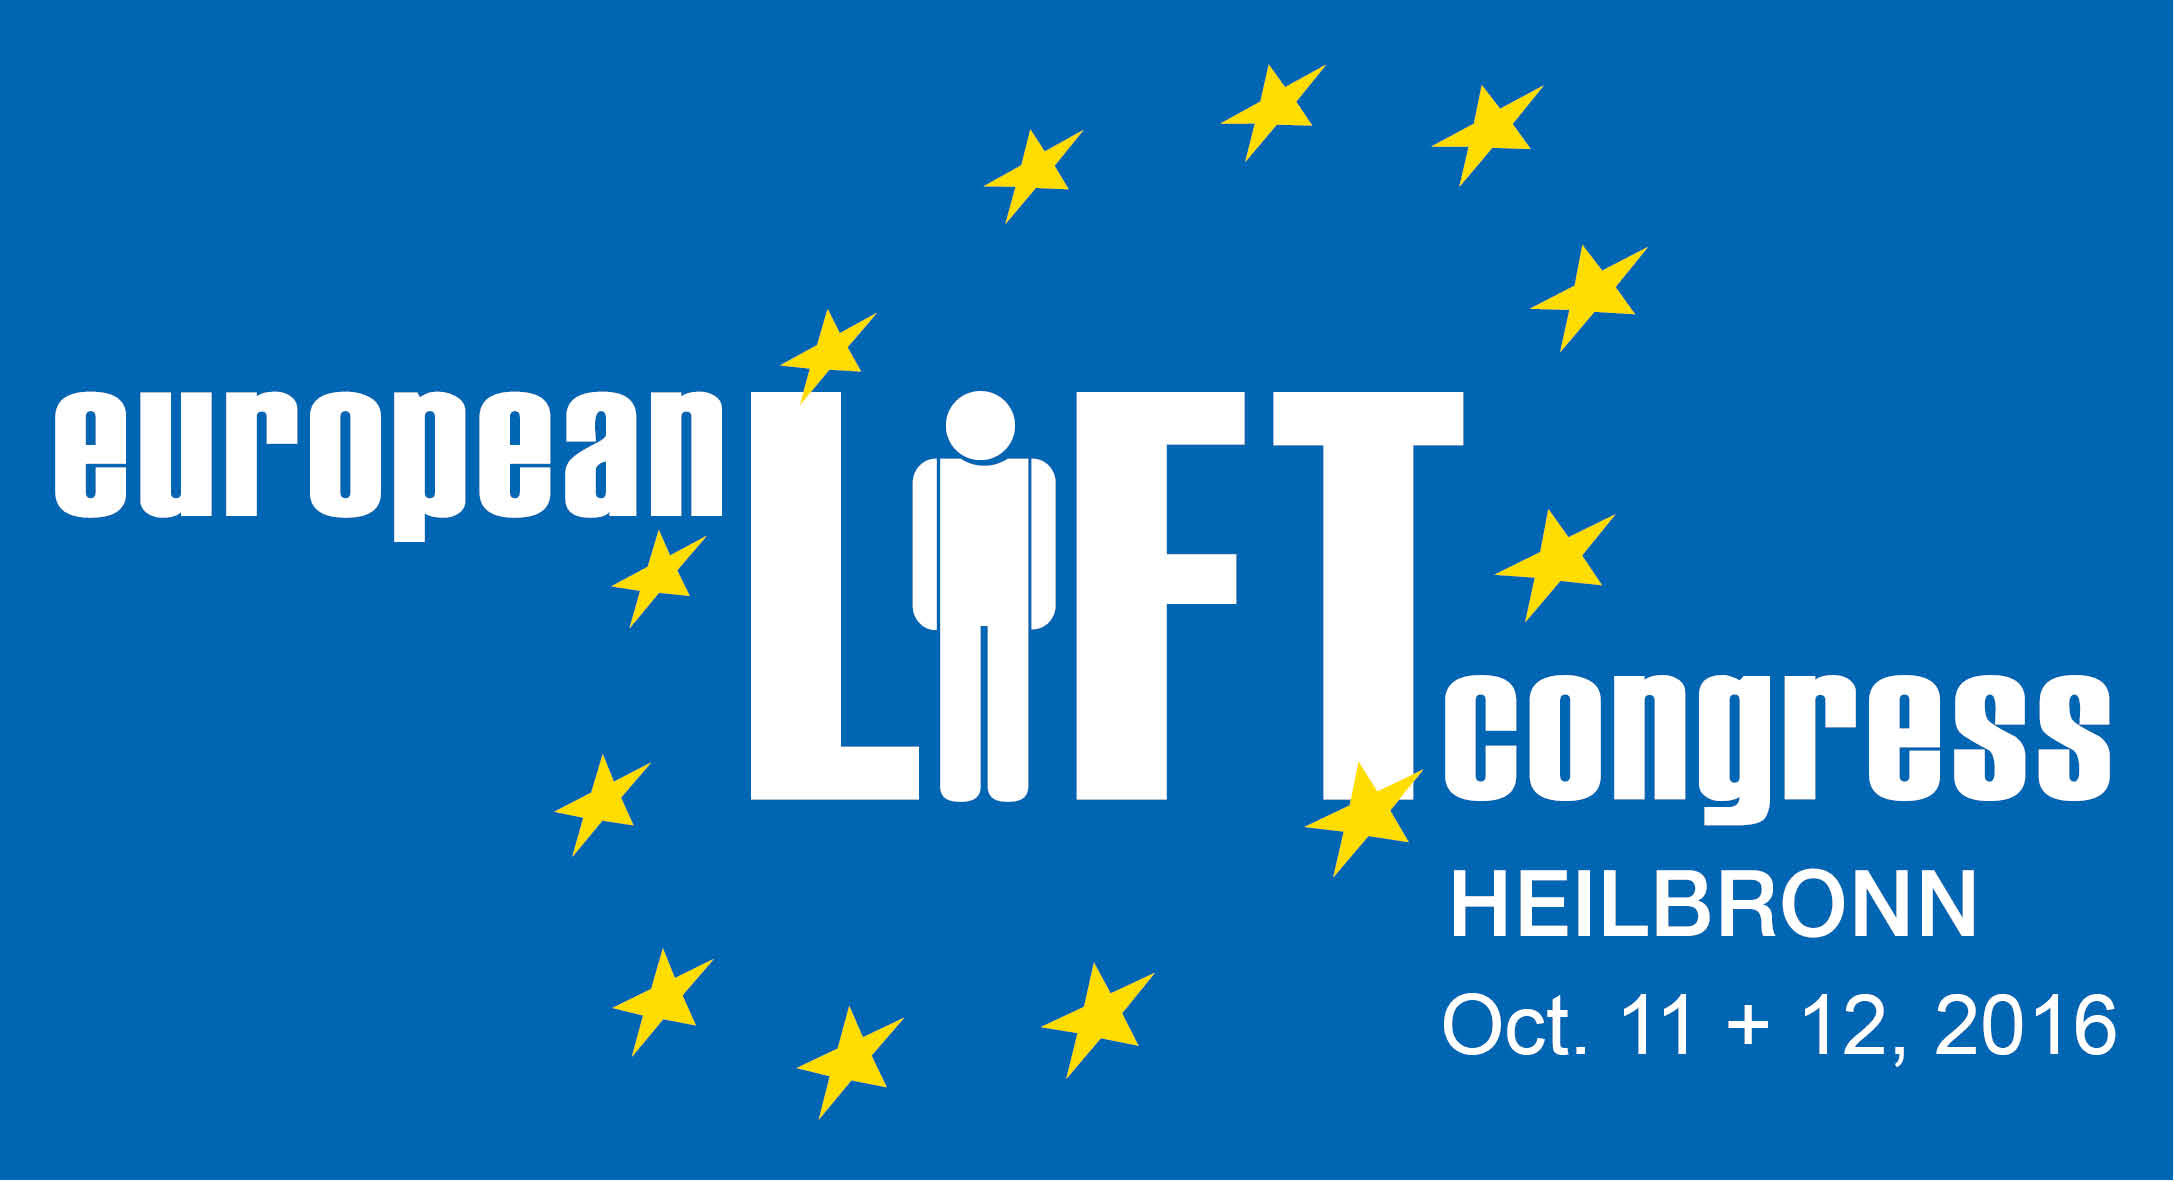 European Lift Congress Heilbronn 2016